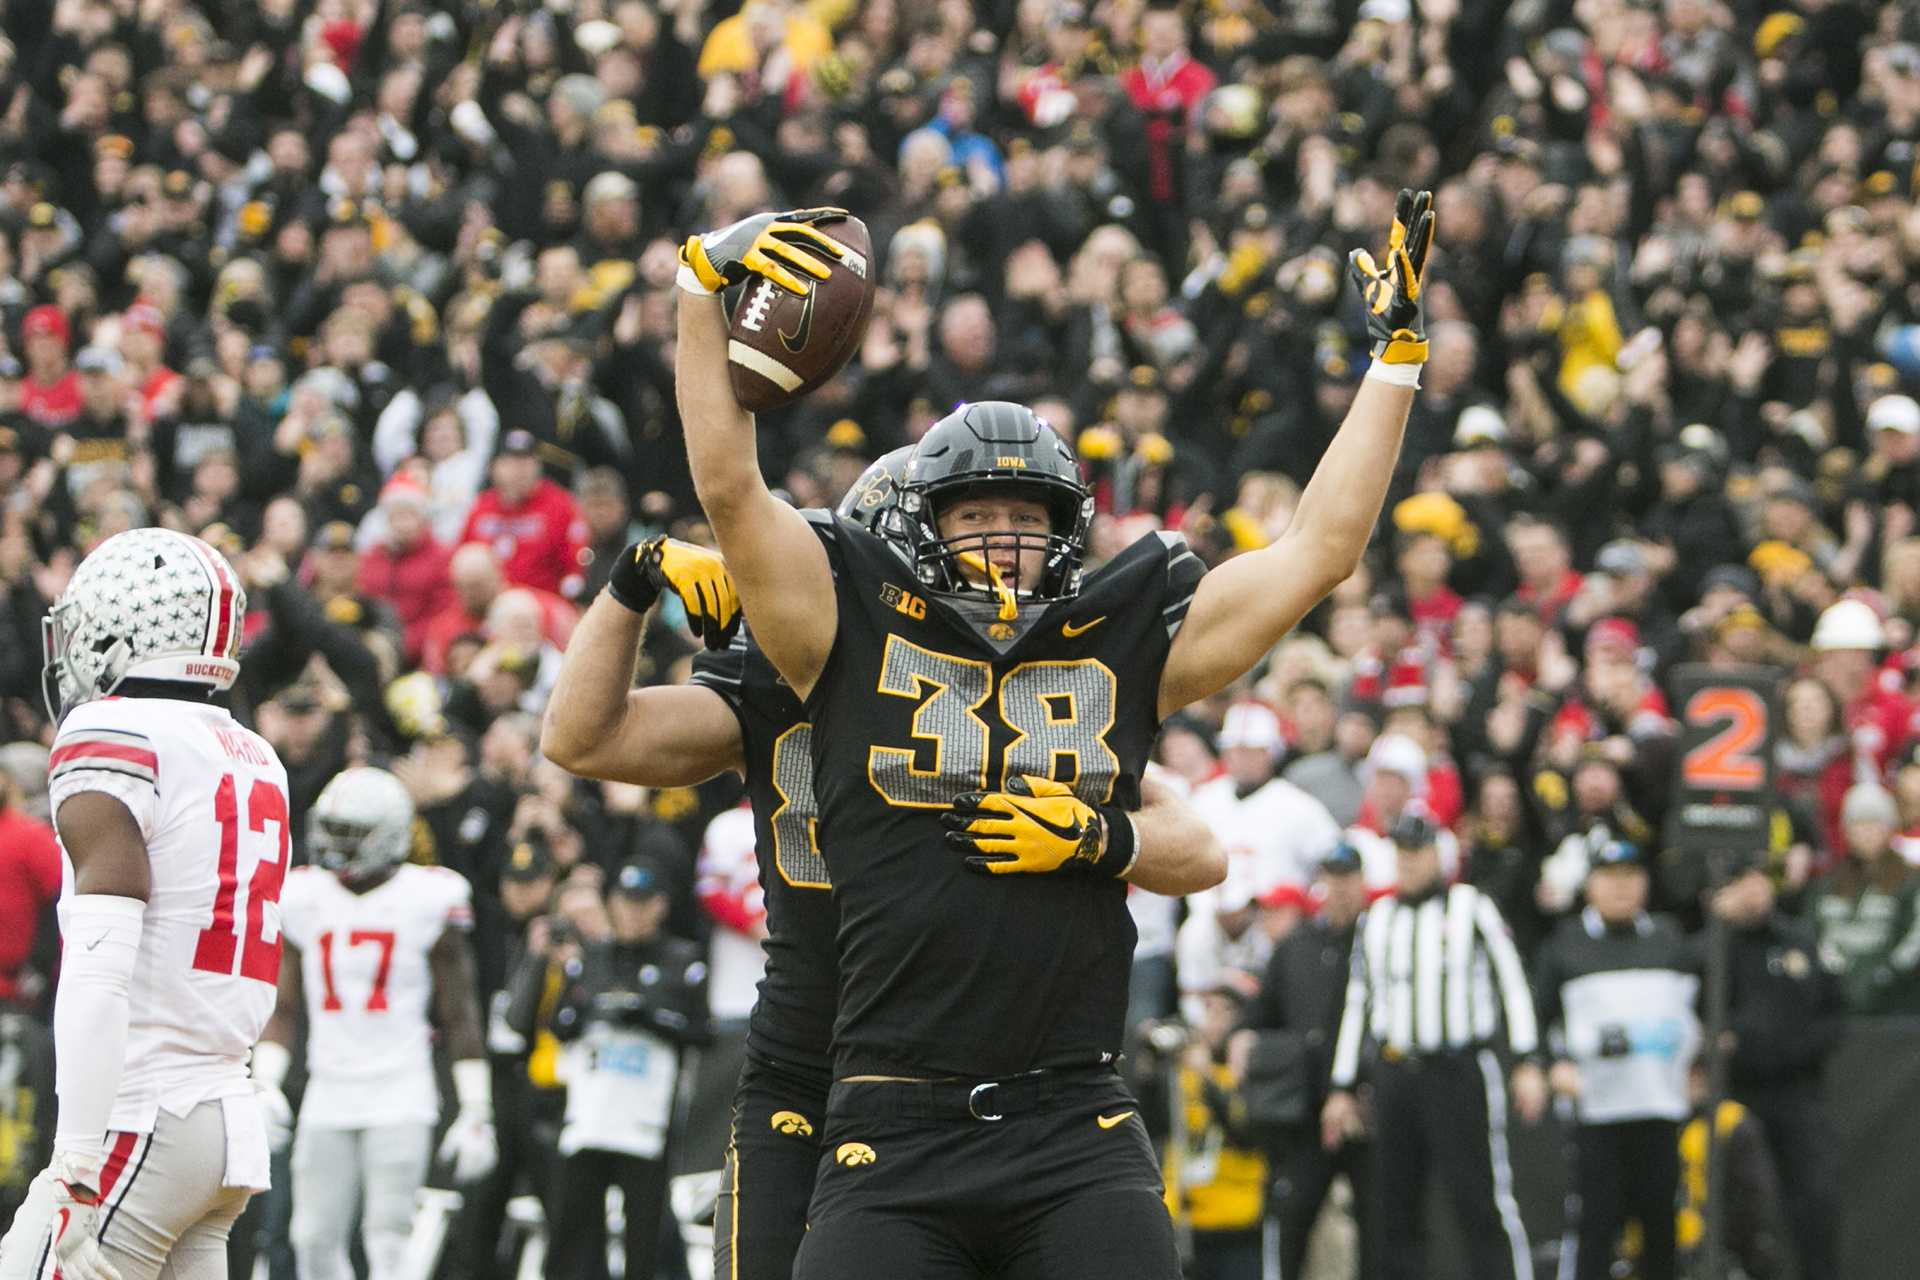 Iowa tight end T.J. Hockenson celebrates after catching a touchdown pass during the Iowa/Ohio State football game in Kinnick Stadium on Saturday, Nov. 4, 2017. The Hawkeyes defeated the Buckeyes in a storming fashion, 55-24. (Joseph Cress/The Daily Iowan)